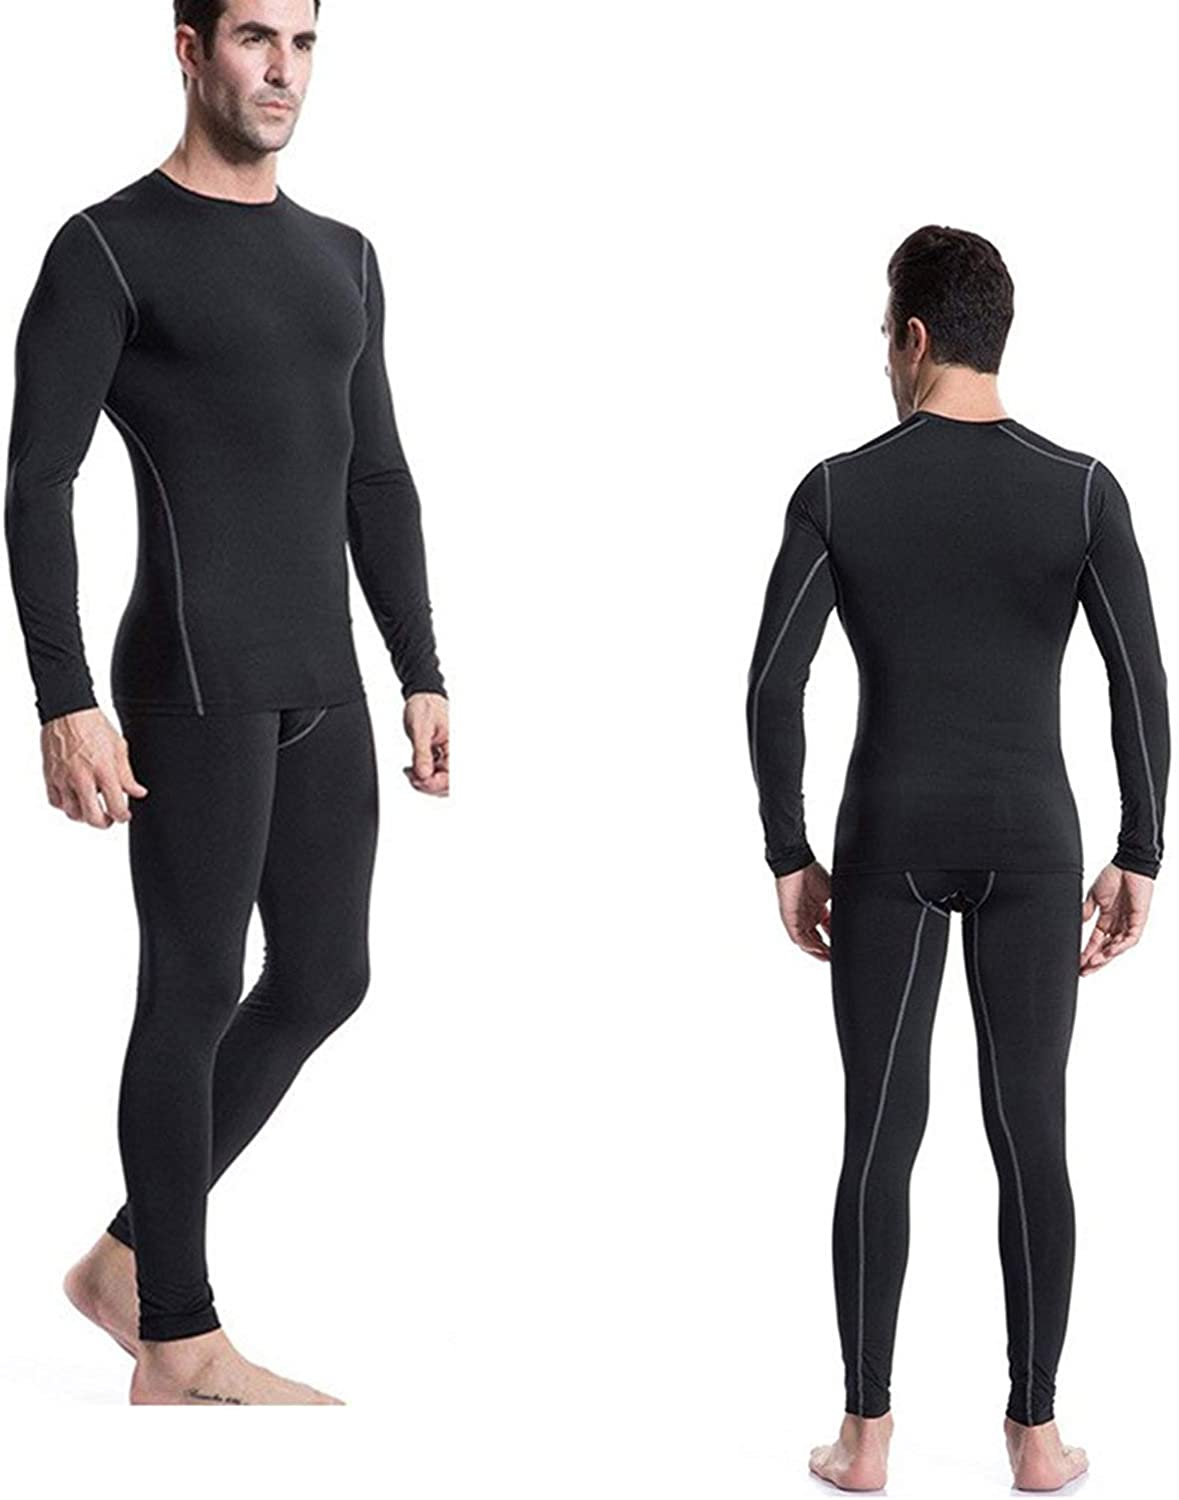 Minghe Mens Thermals Underwear Set Fleece Lined Tops Long Johns Warm Base Layer for Skiing